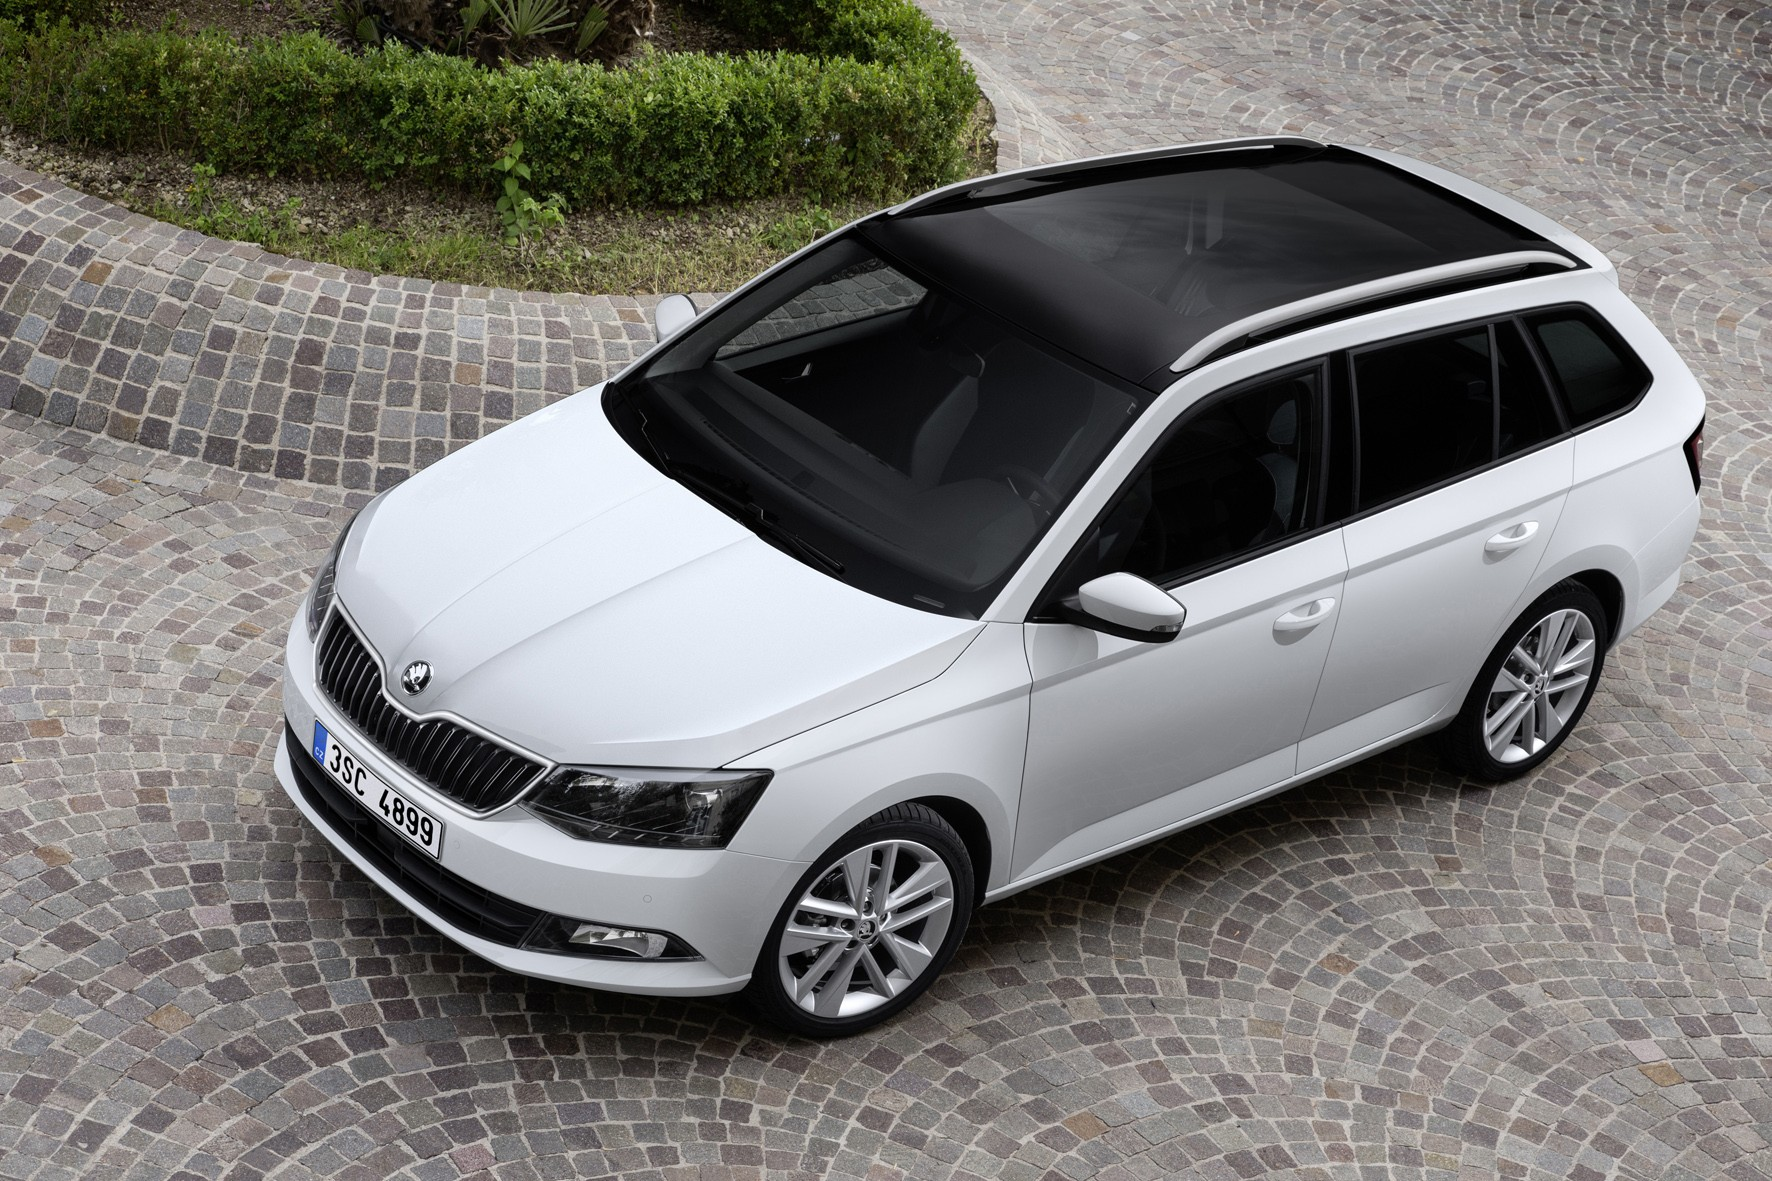 2017 skoda fabia combi rs car photos catalog 2018